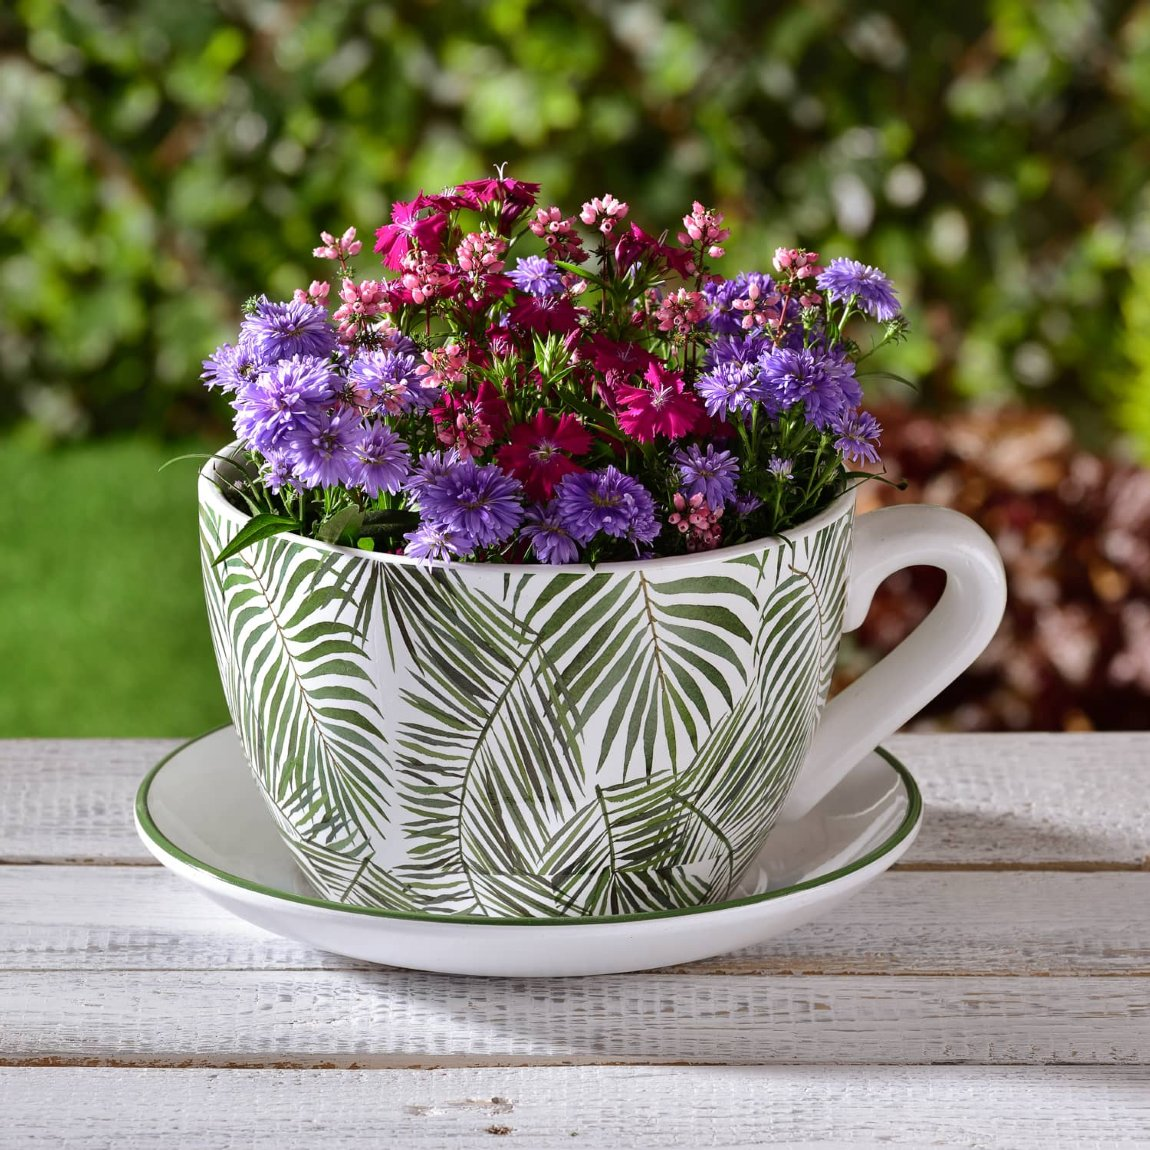 Giant Teacup & Saucer Planter - Palm Leaves